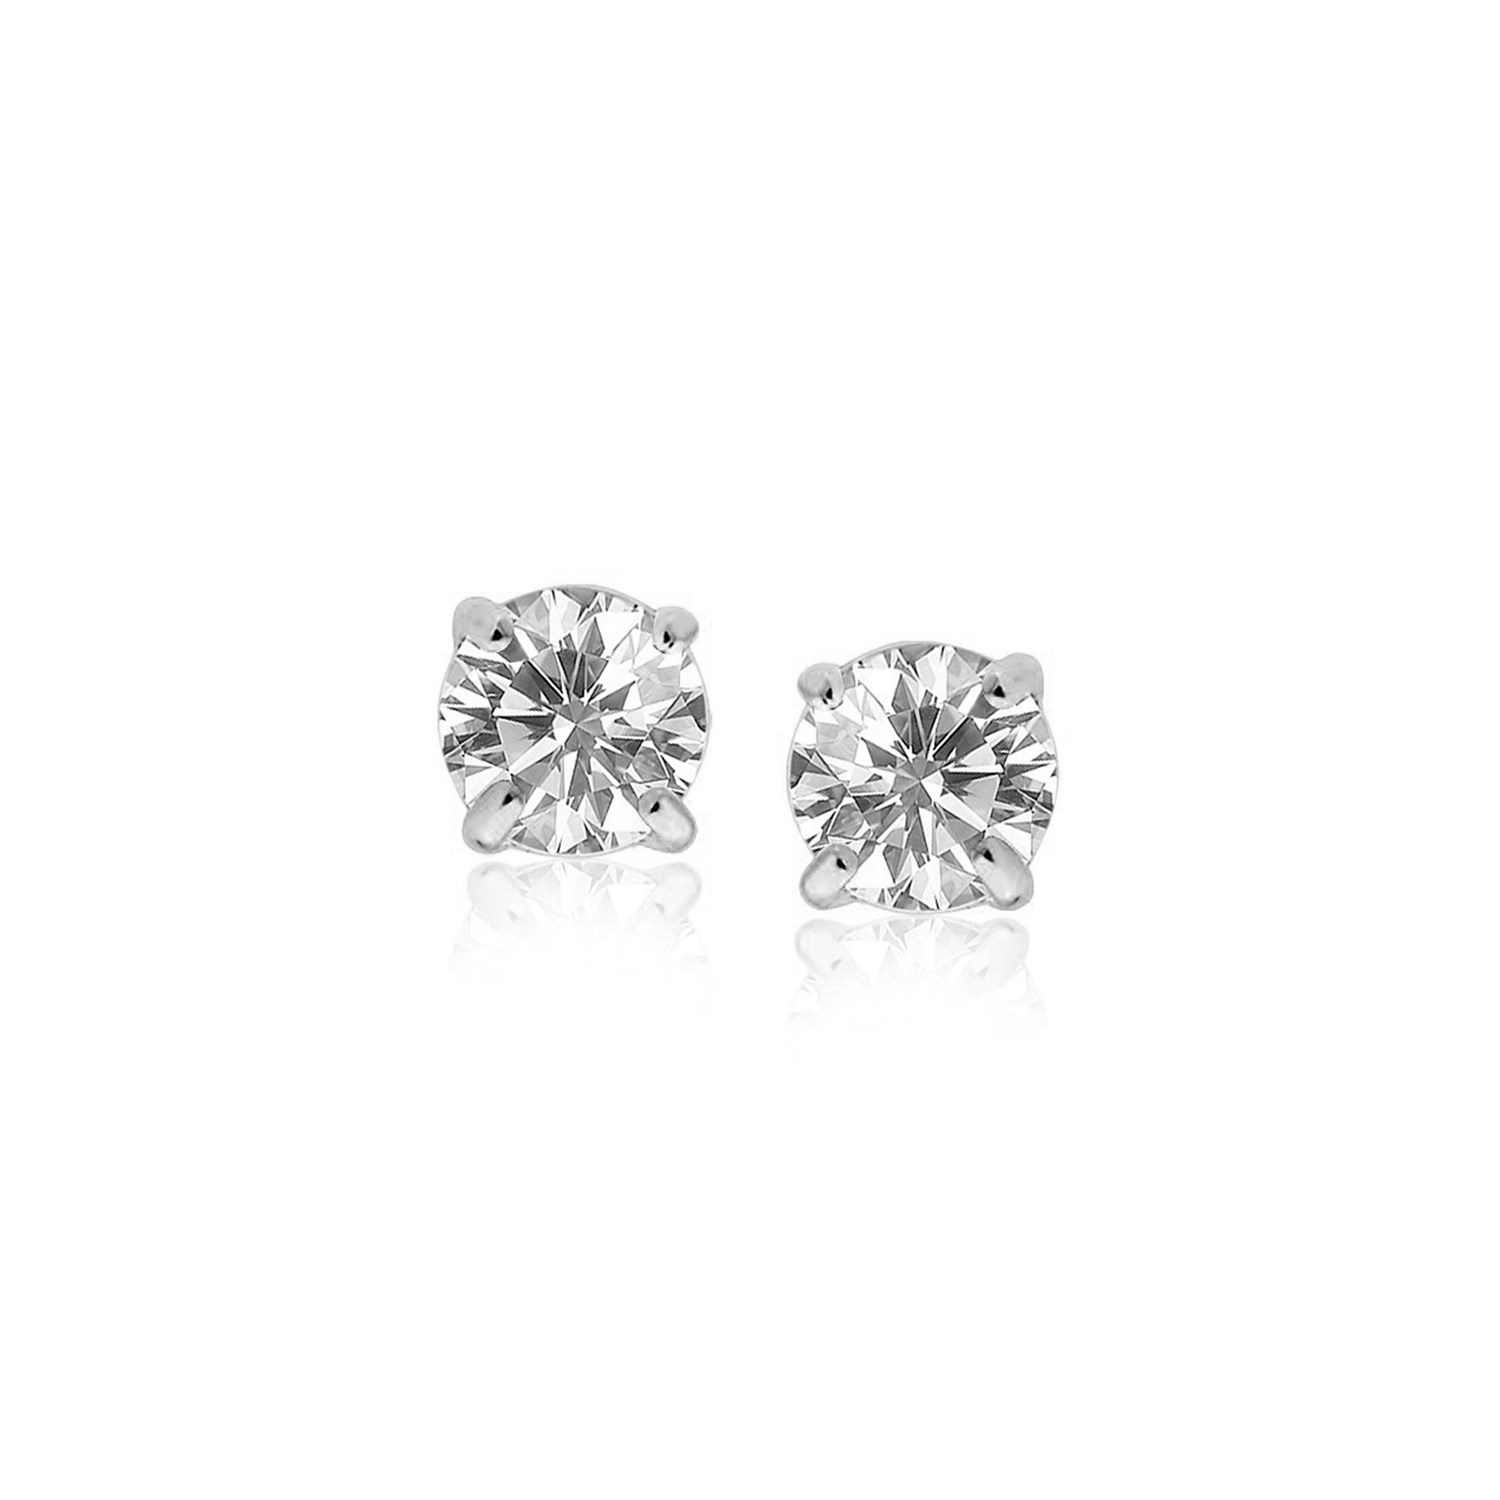 14k White Gold Stud Earrings with White Hue Faceted Cubic Zirconia